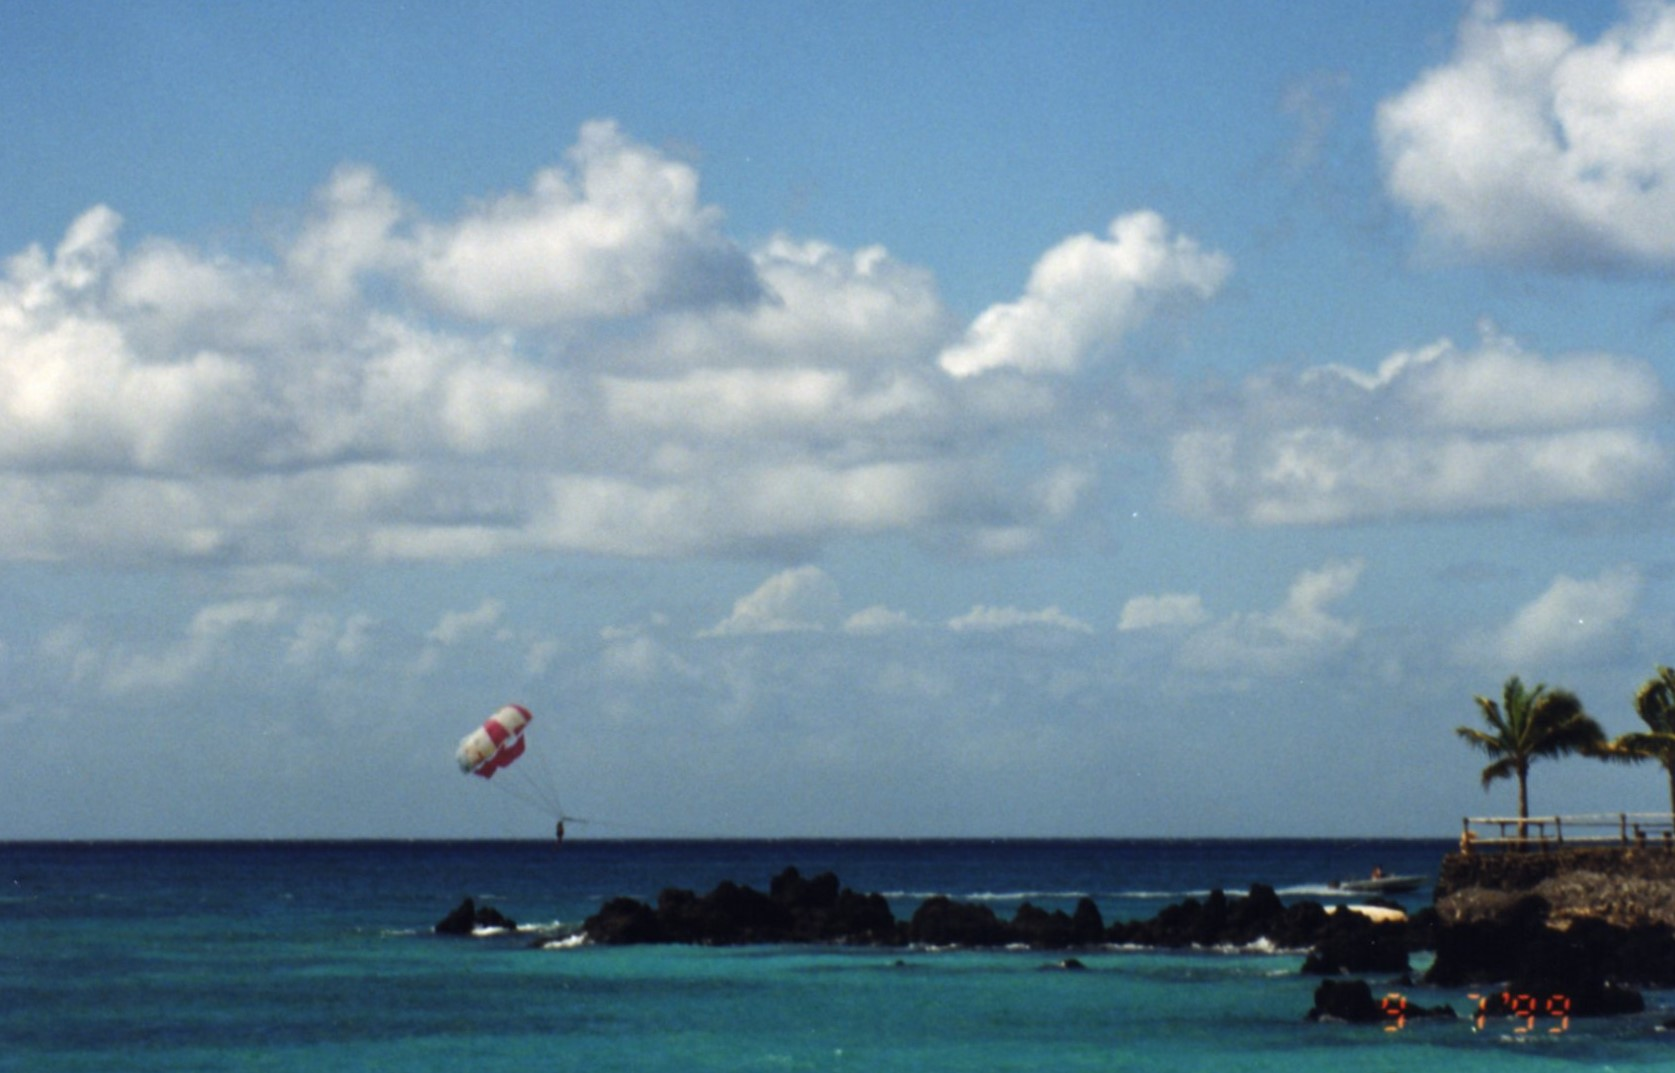 Volcanic rock, watersports and azure blue - island bliss